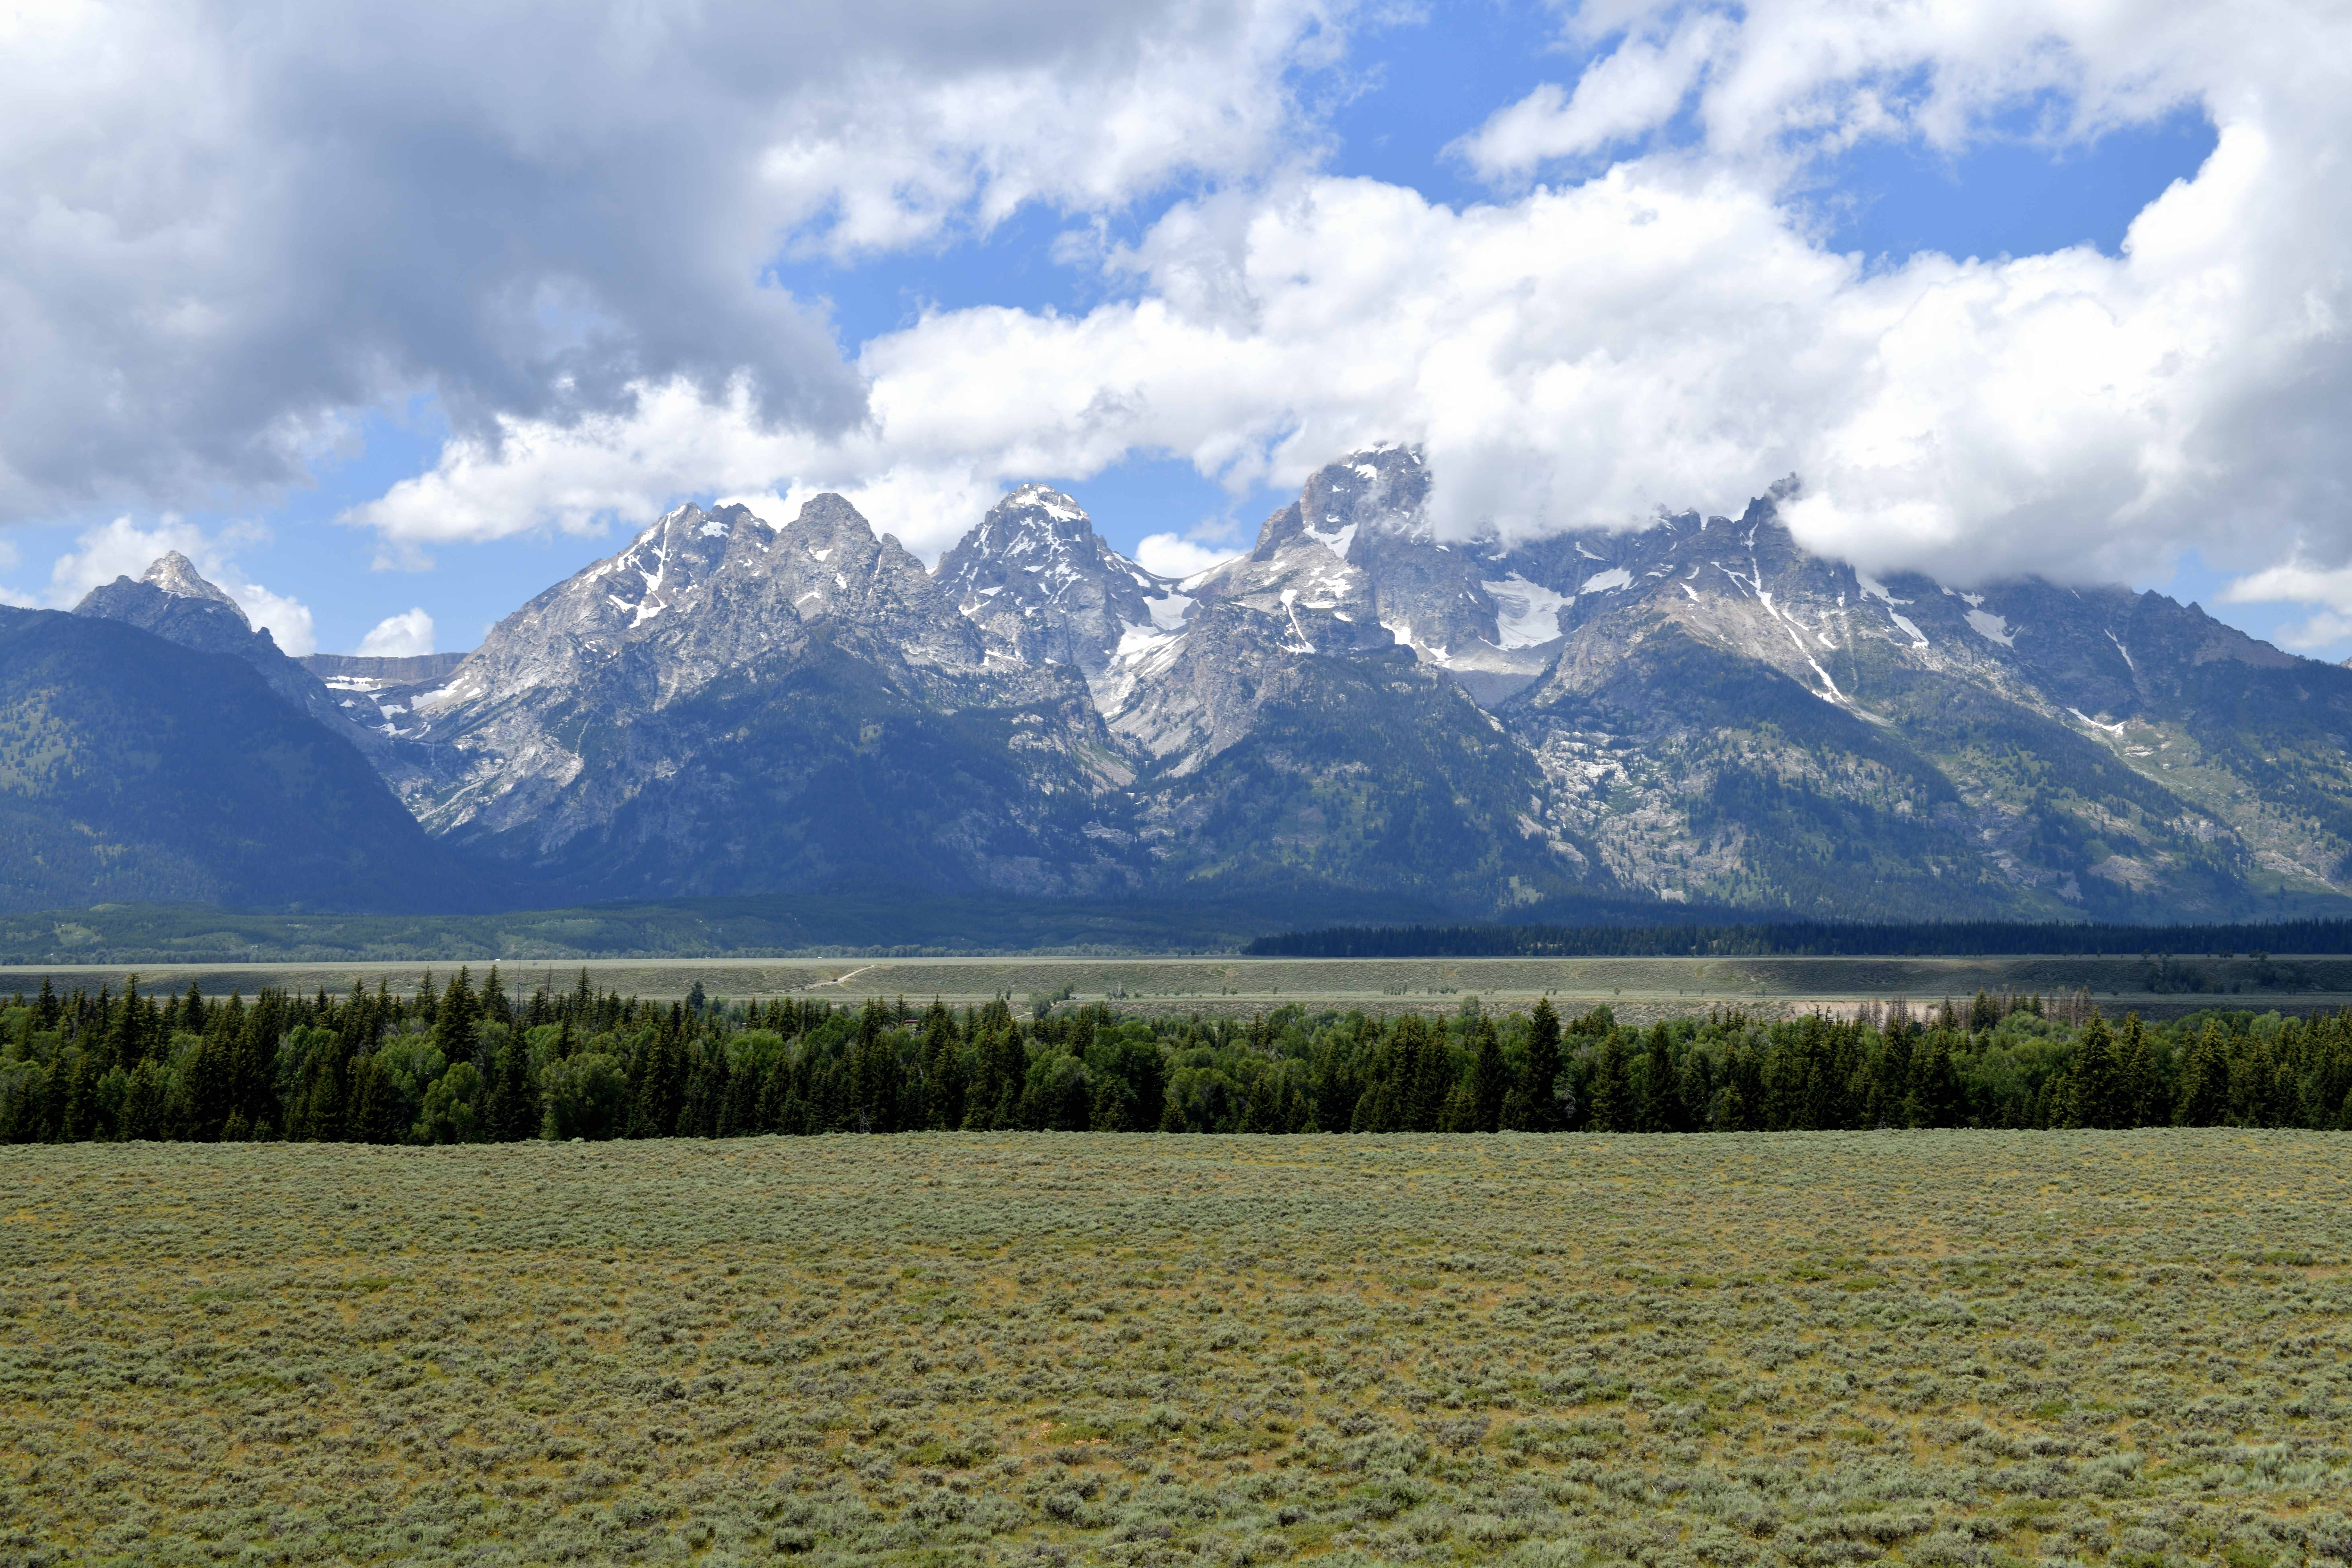 Driving Rt. 93 and 26 to Jackson, Wyoming and Through Grand Teton National Park